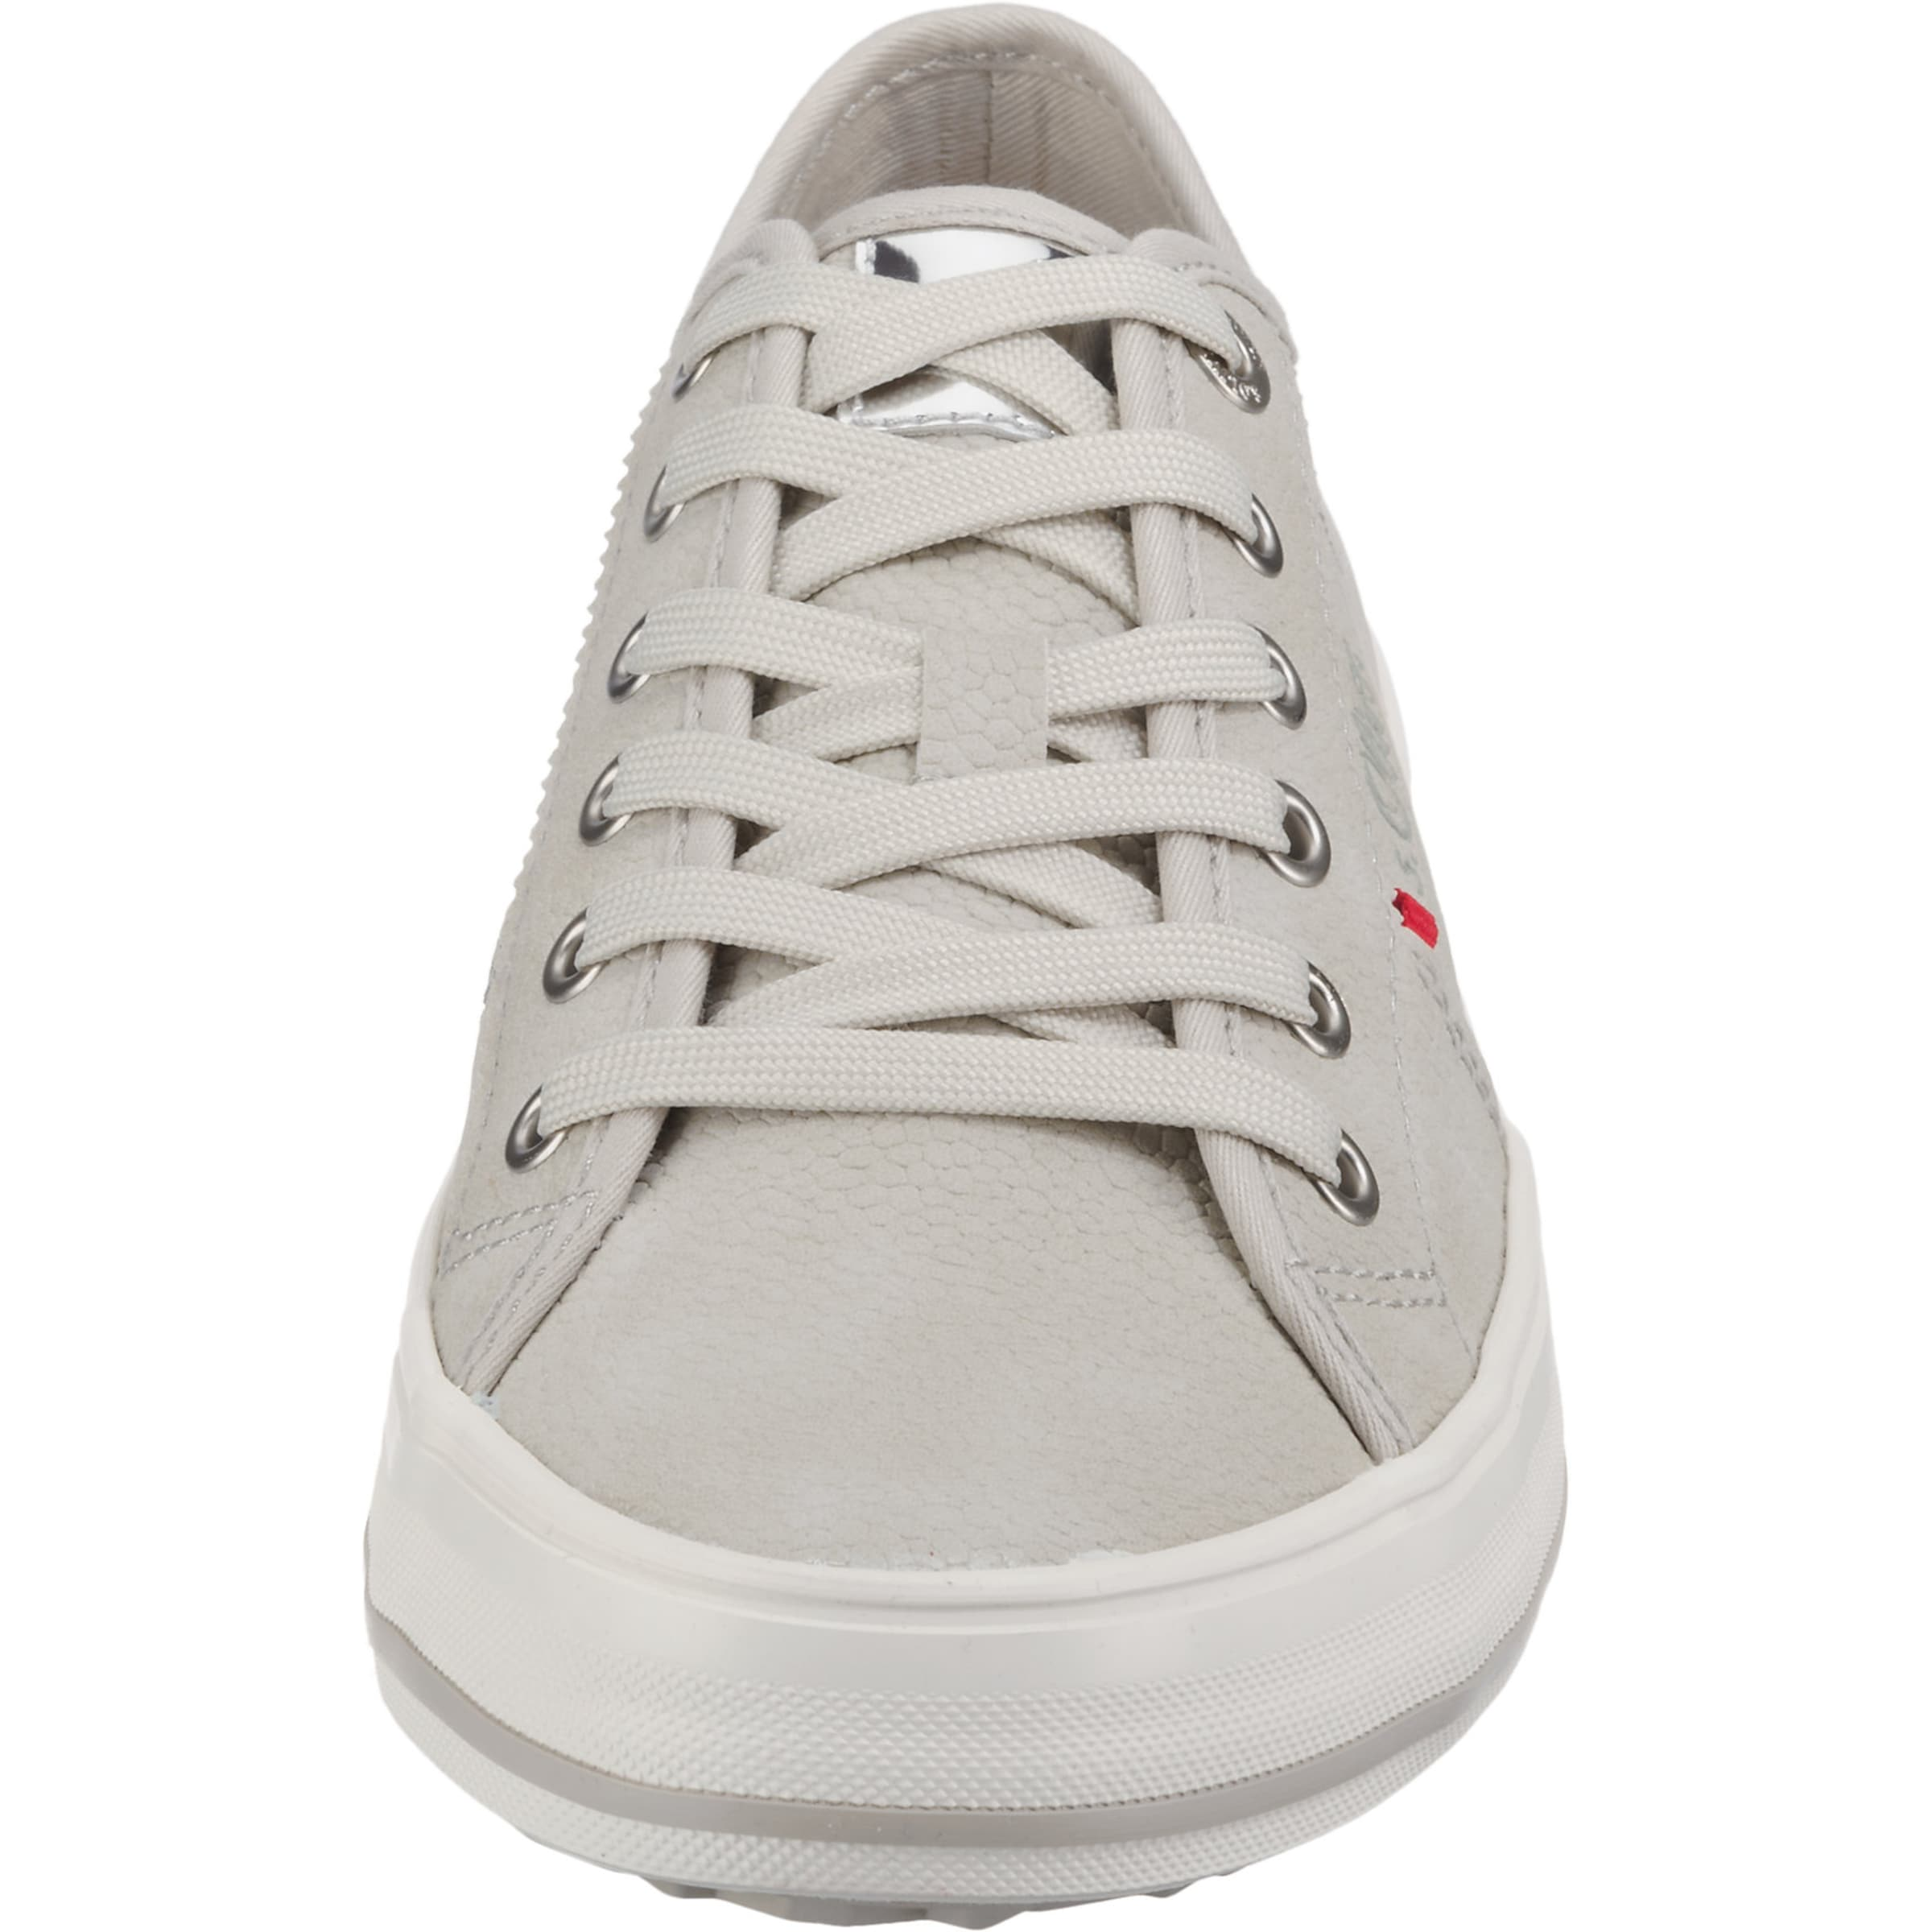 Red In Grau oliver Sneakers S Label kXP8On0w